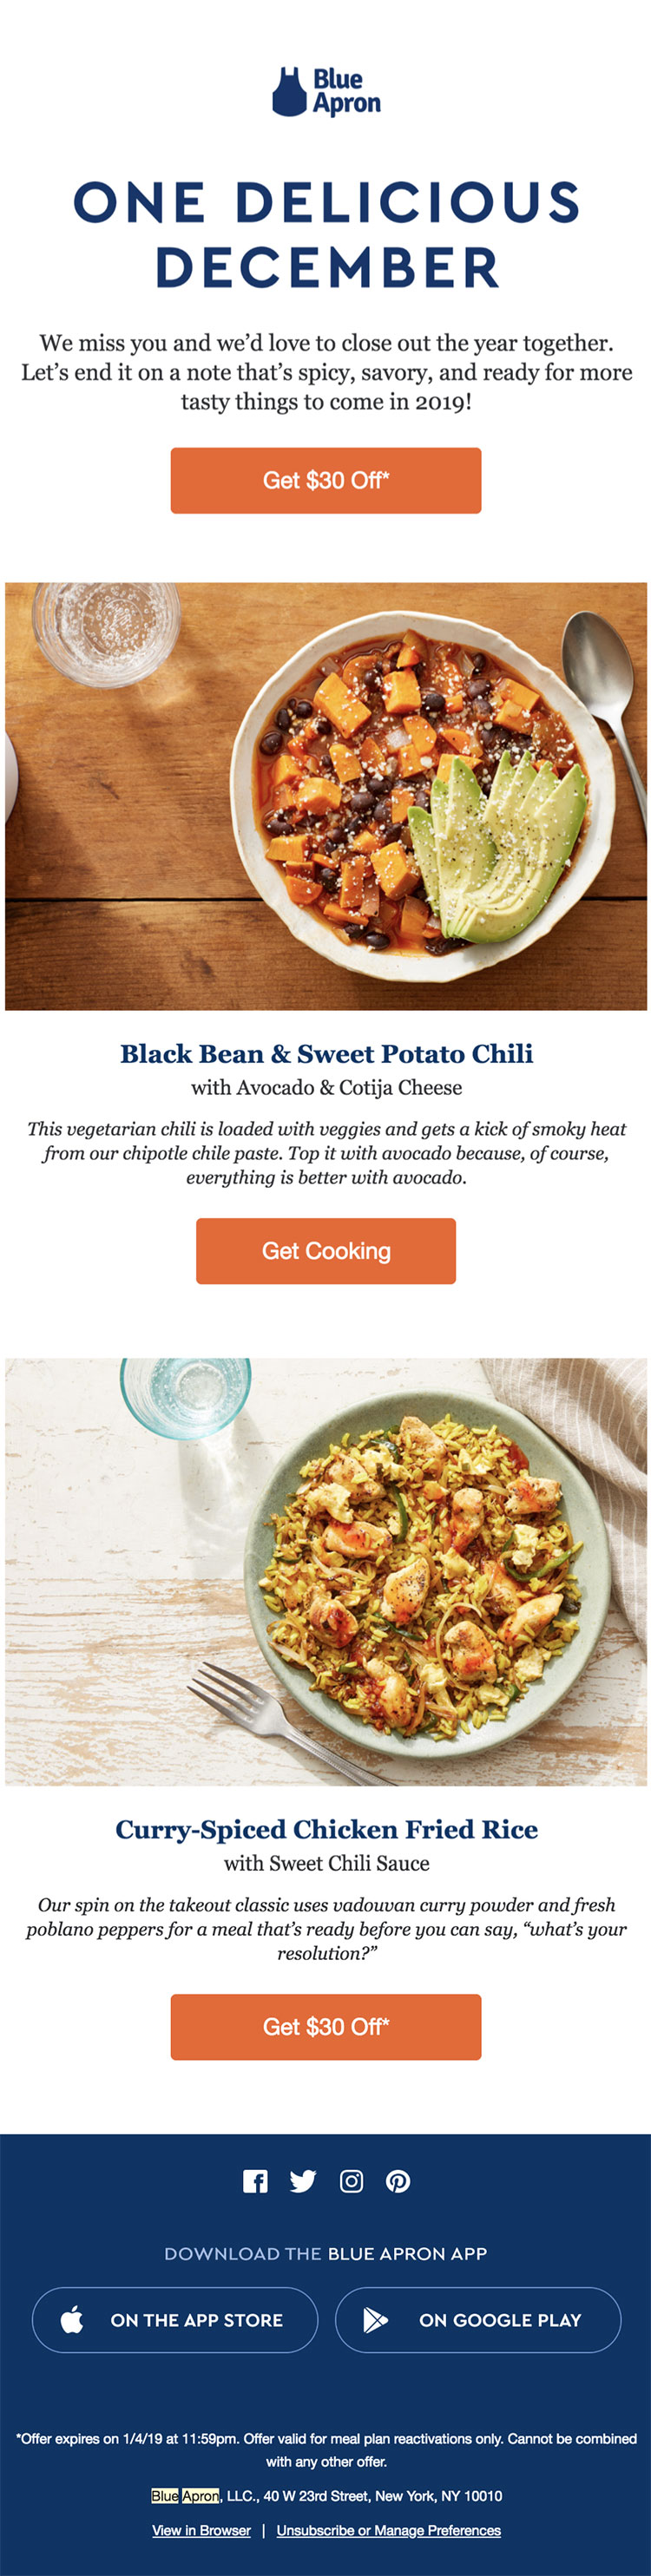 Blue Apron re-engagement email